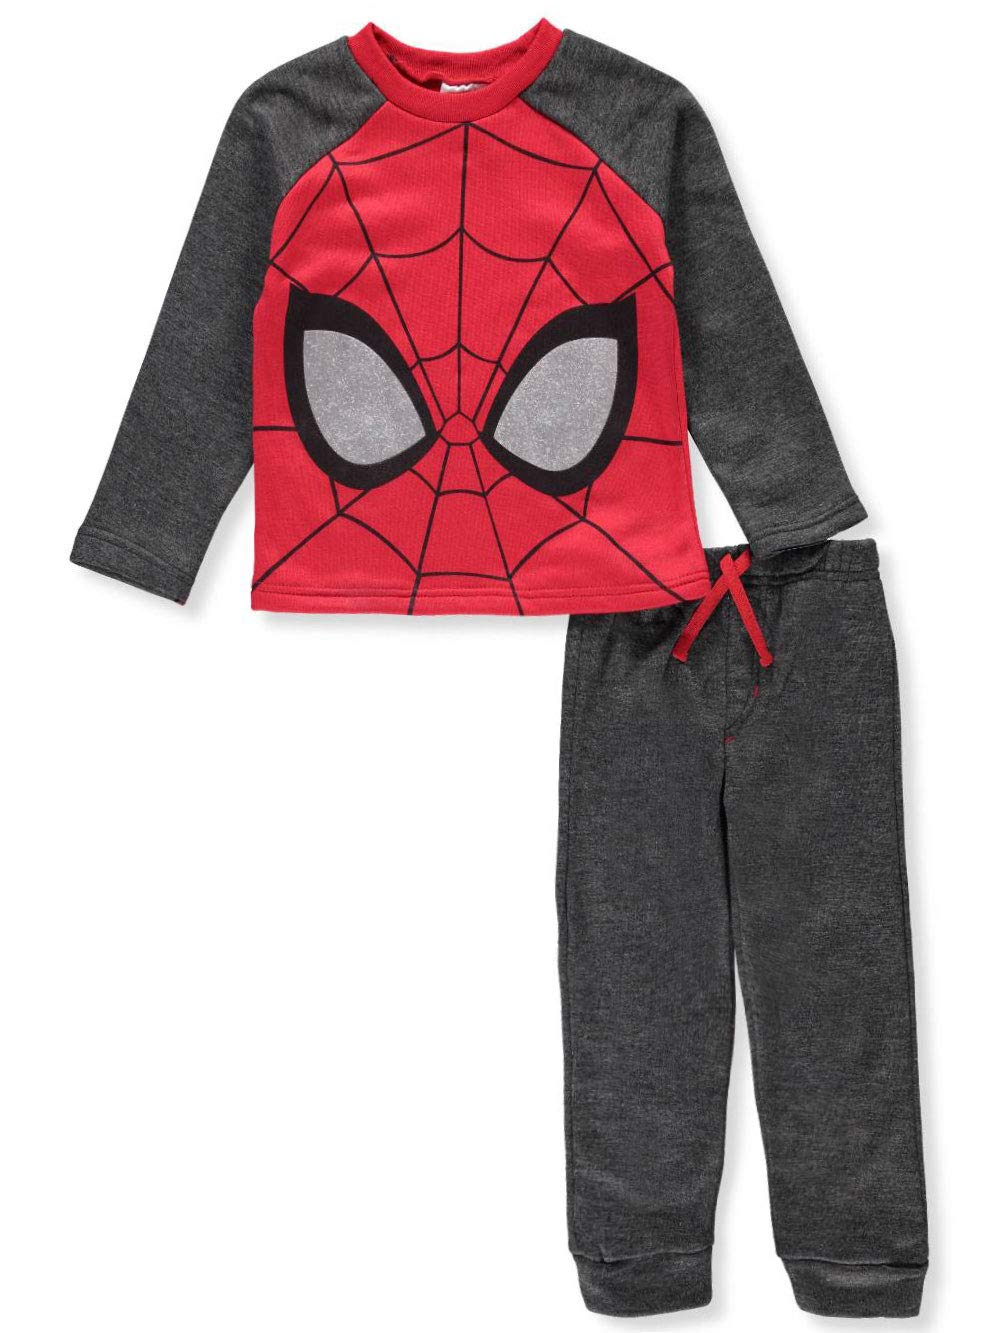 Marvel Spider-Man Boys' 2-Piece Pants Set Outfit 6